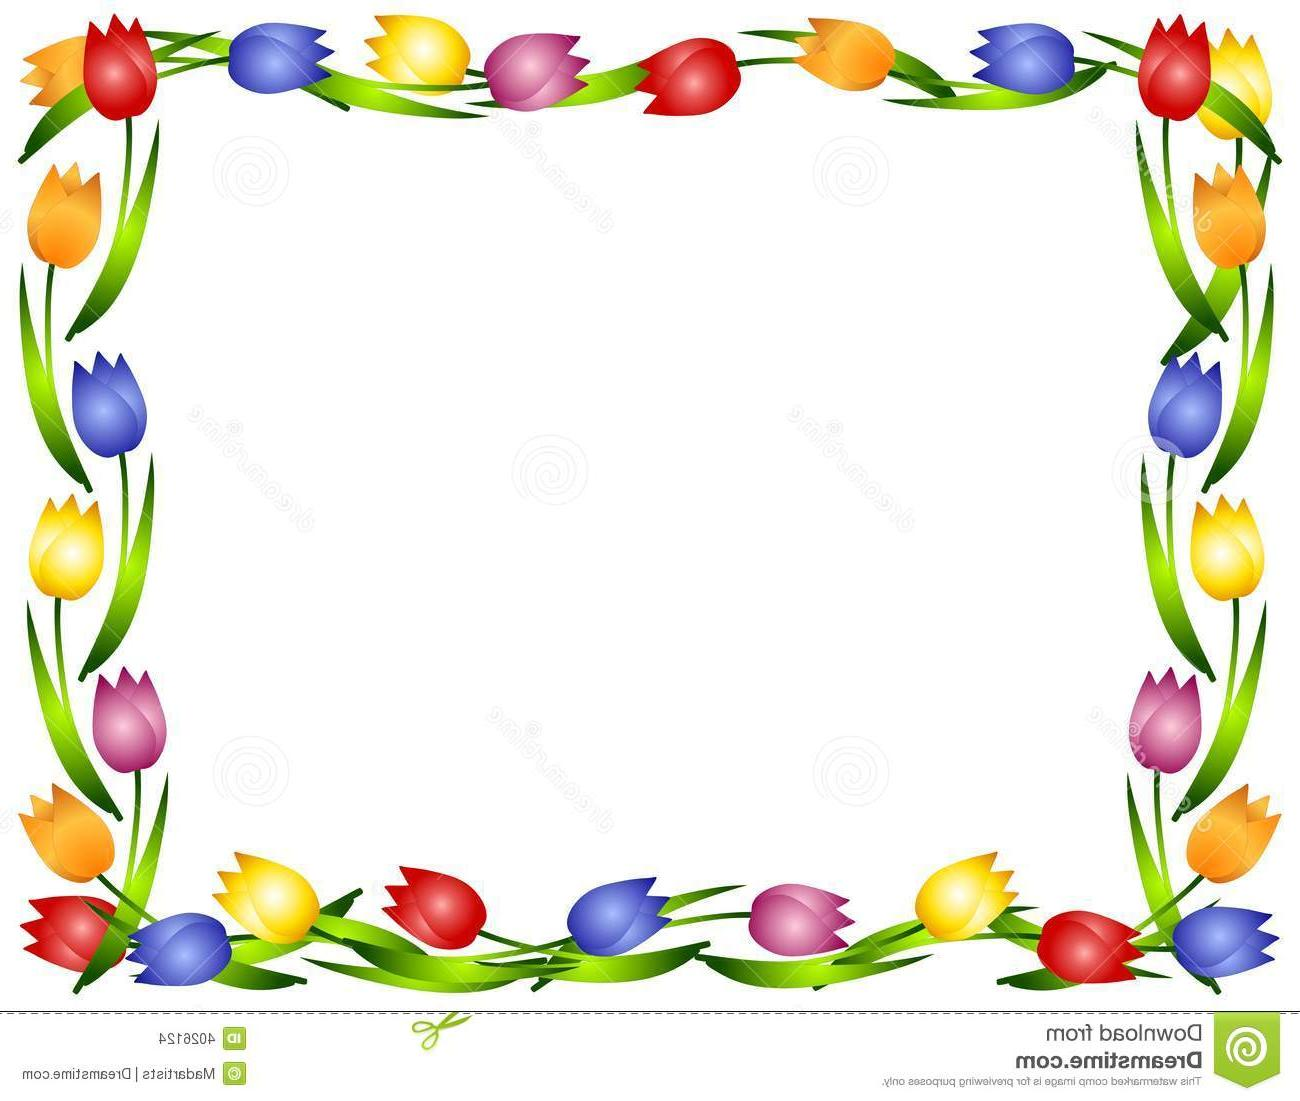 Tulip Clipart Border | Free download best Tulip Clipart ... png transparent library